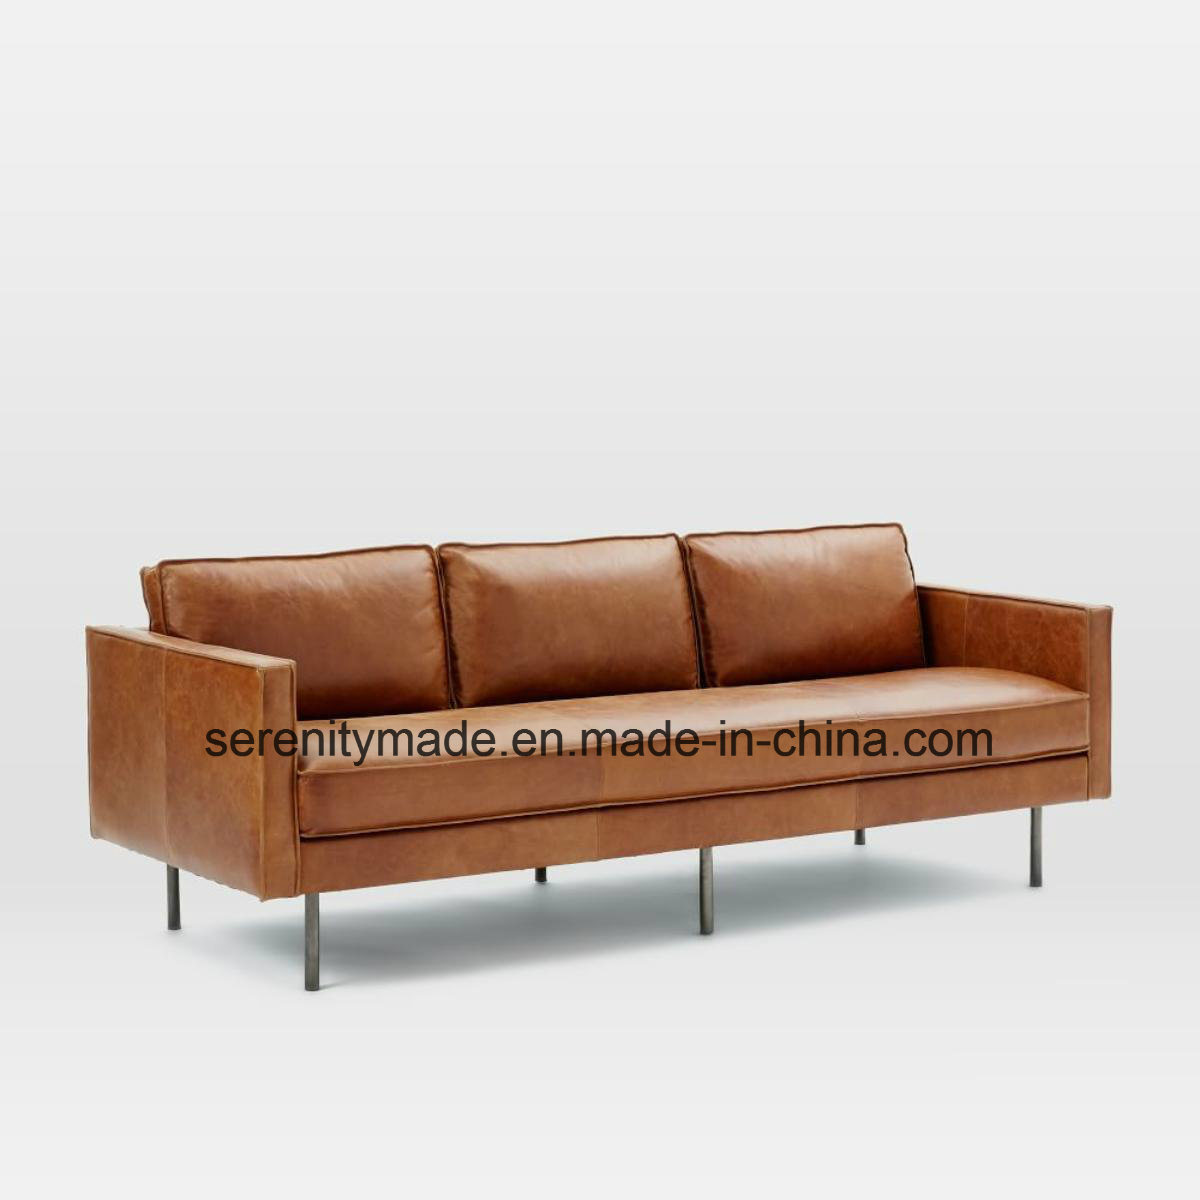 China Industrial Style Living Room Italy Vintage Real Leather Sofa ...